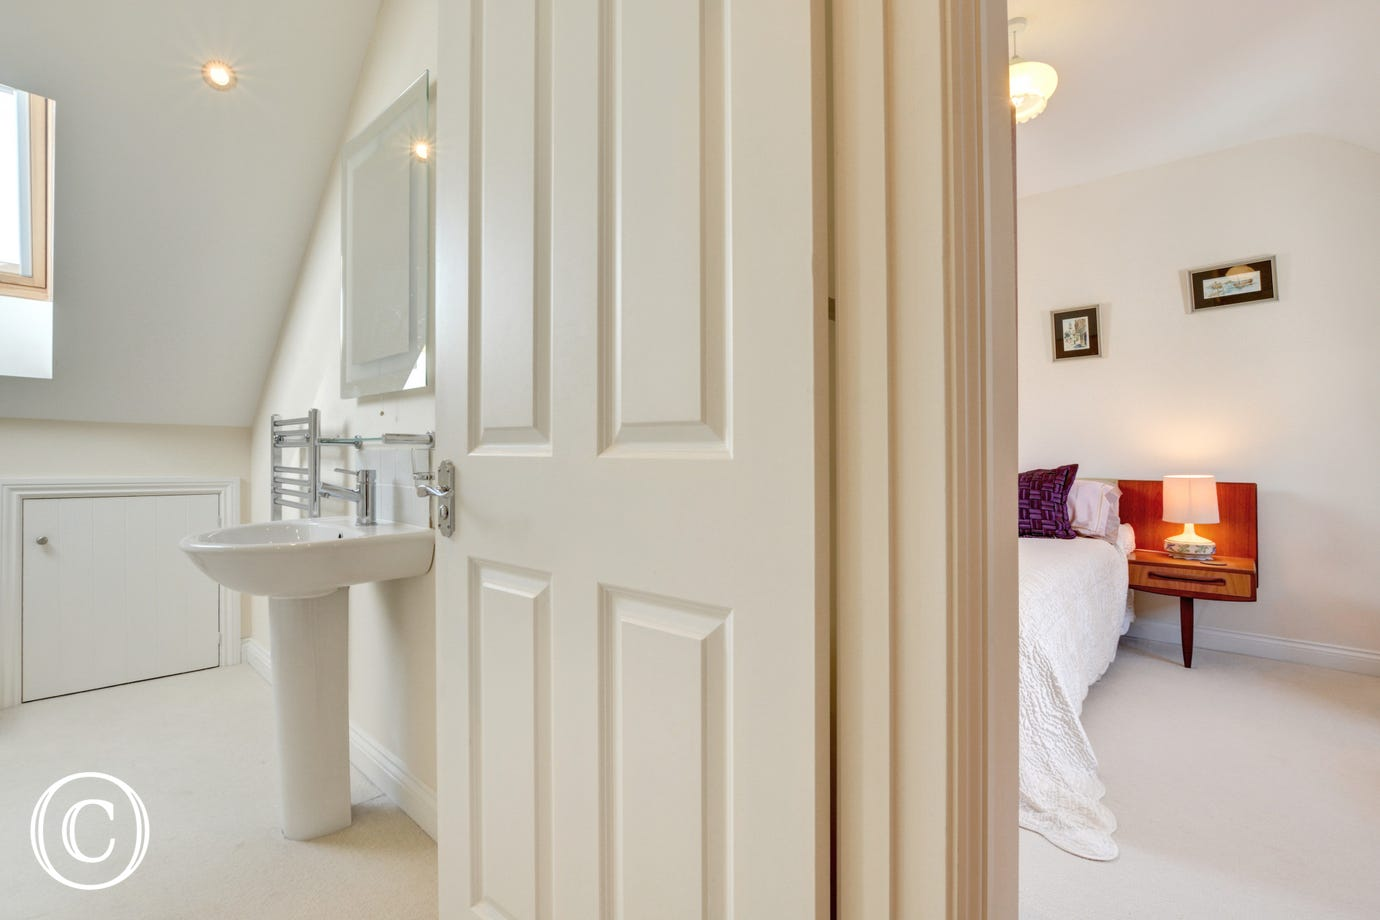 A glimpse of the master bedroom and en-suite